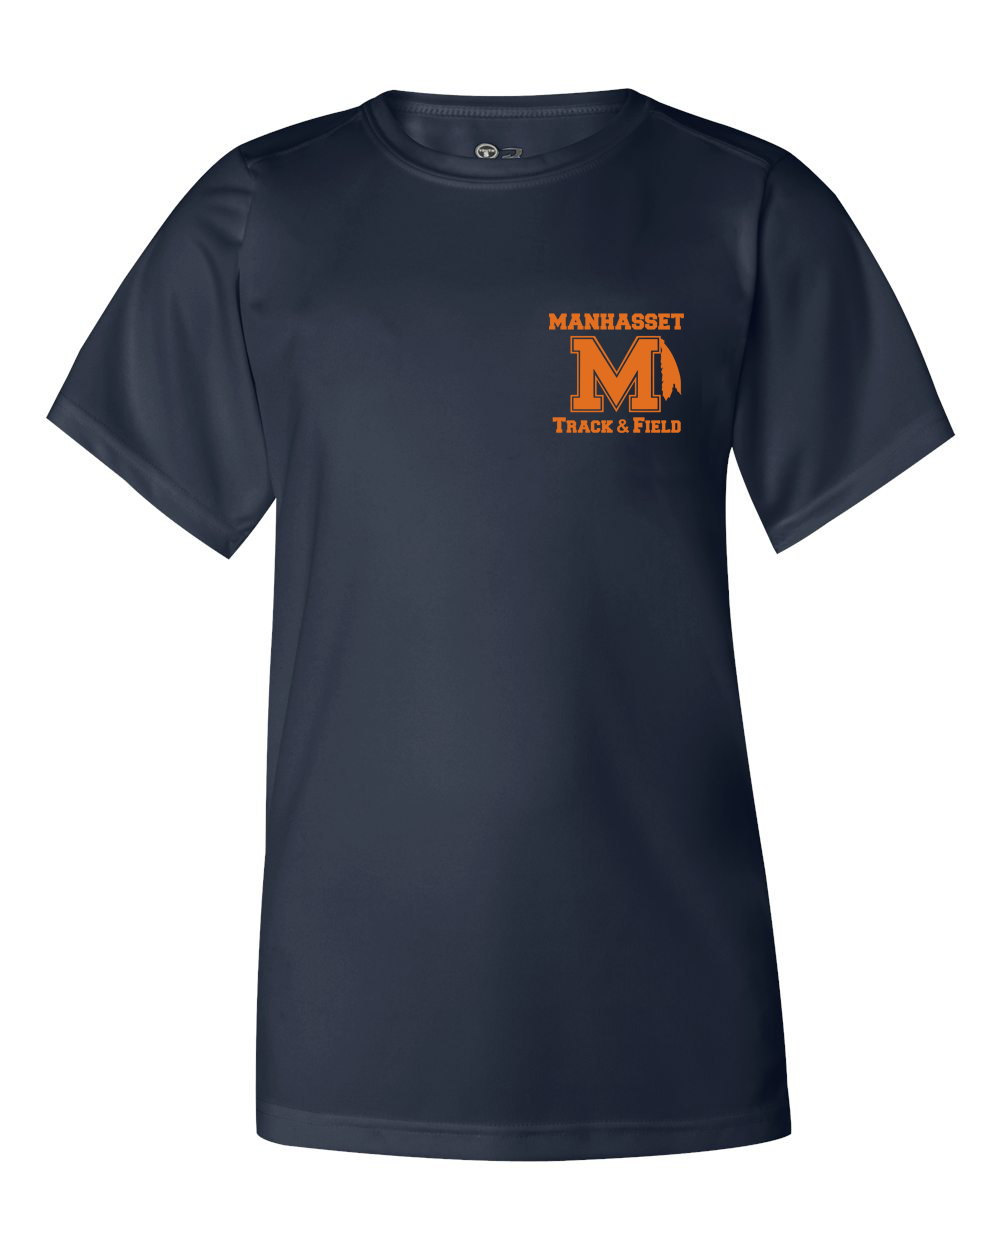 Manhasset Track & Field Youth Tee